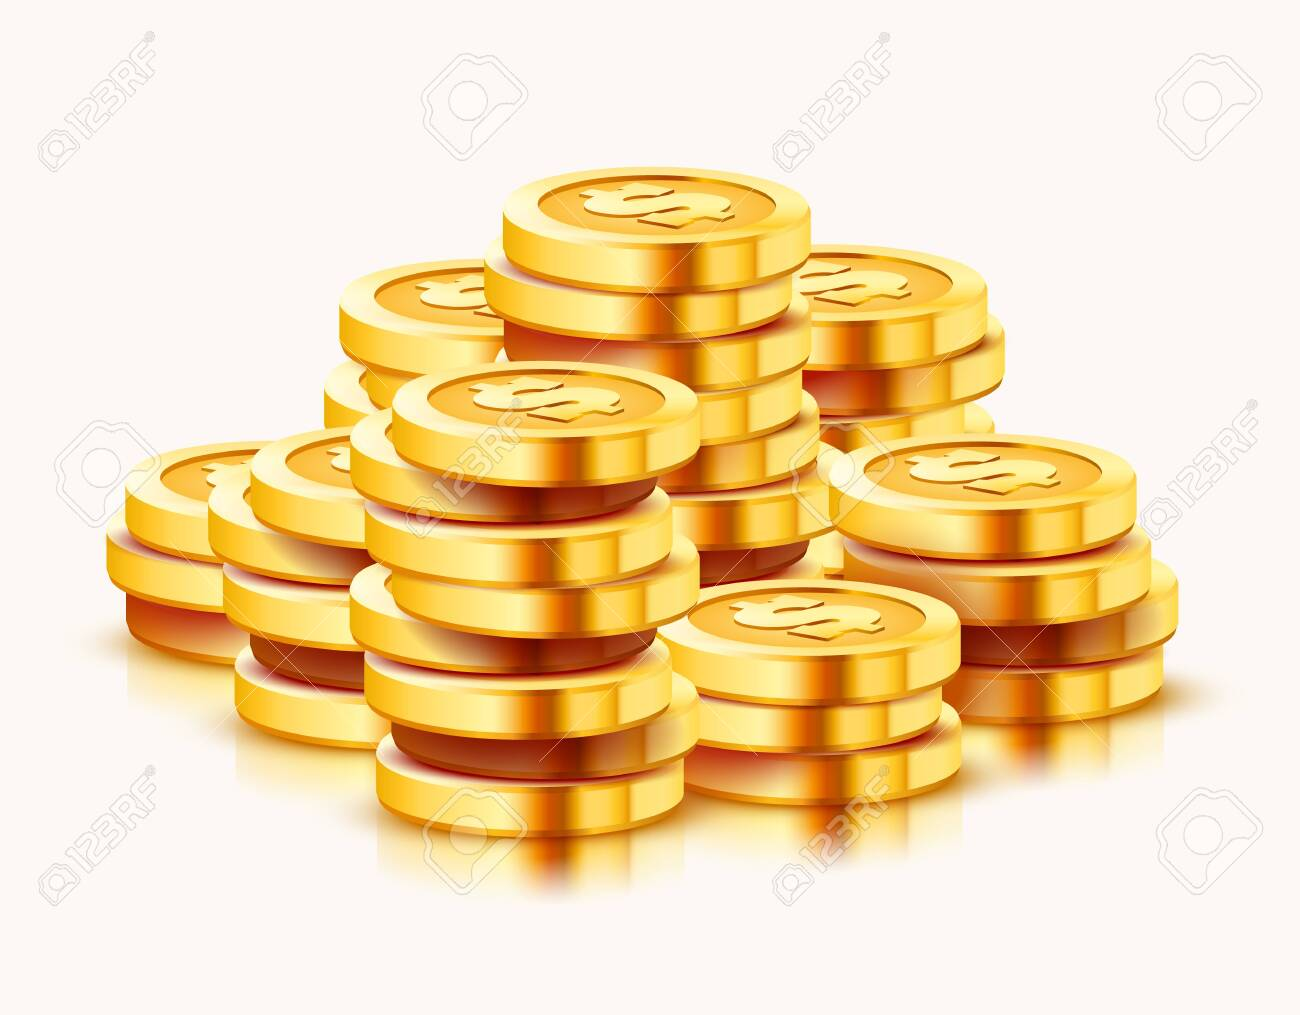 Growing stack of golden dollar coins isolated on white background. Economics concept. Vector illustration - 133423856